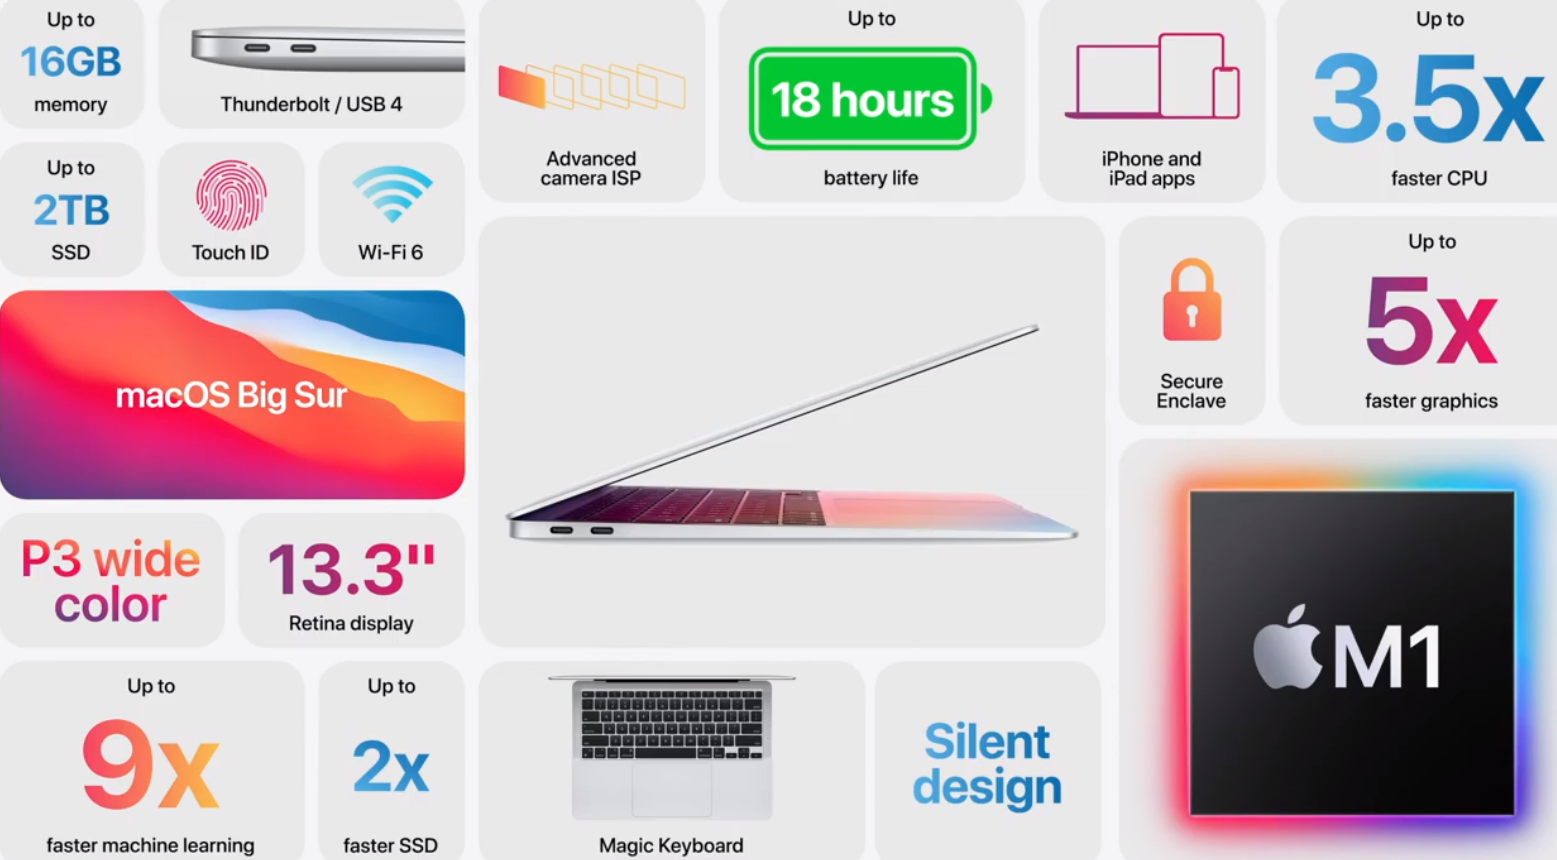 macbook air overview